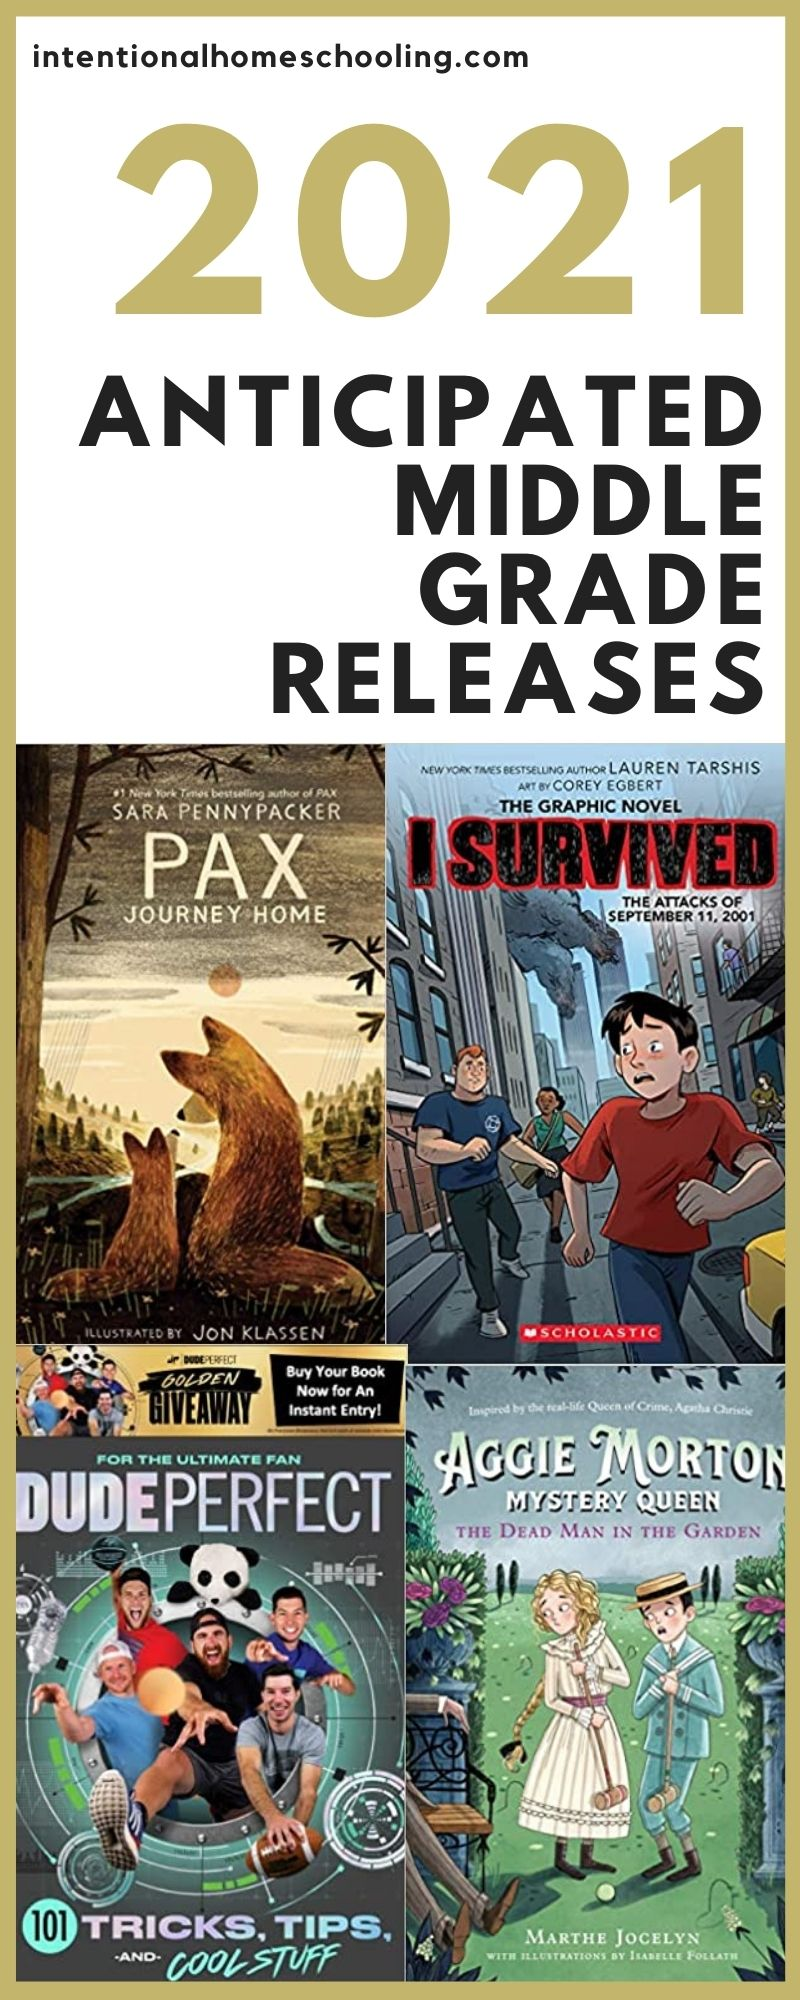 Middle Grade Books Coming Out in 2021 That I'm Looking Forward to! Middle Grade Anticipated Releases for June-December - Middle Grade books coming out in the second half of 2021